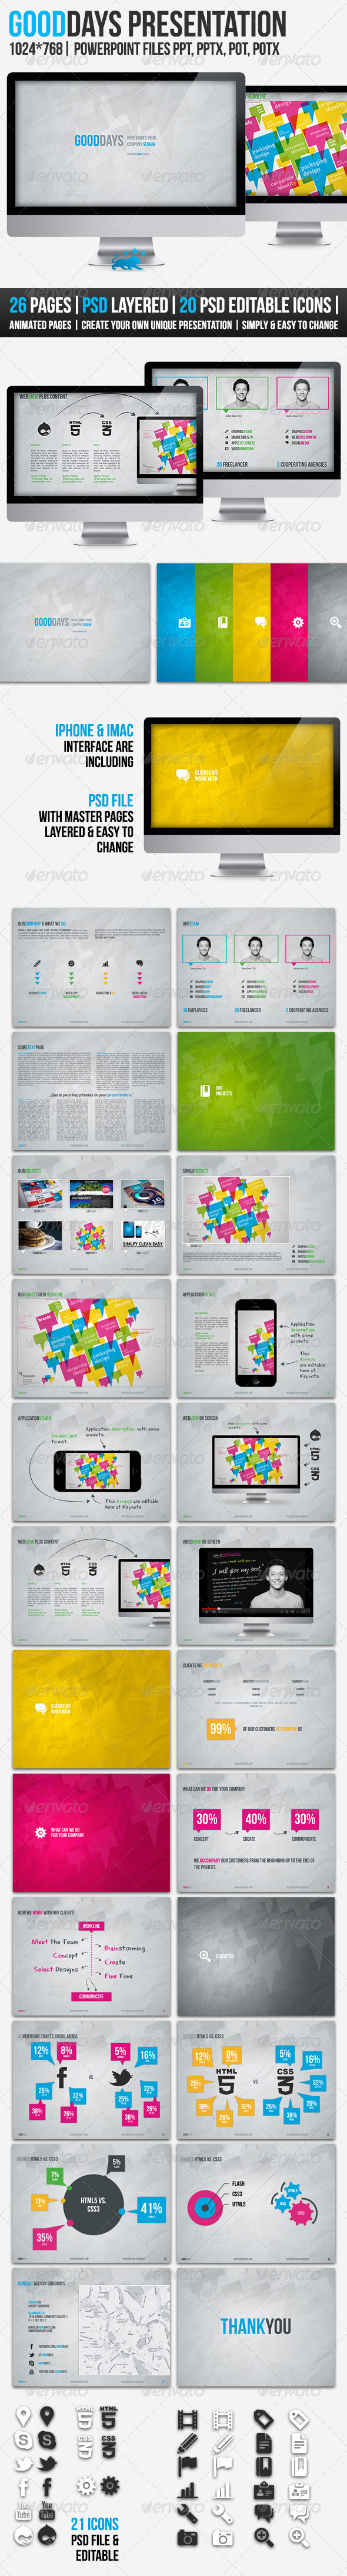 GraphicRiver GOODDAYS 26 Pages POWERPOINT Presentation 3595095